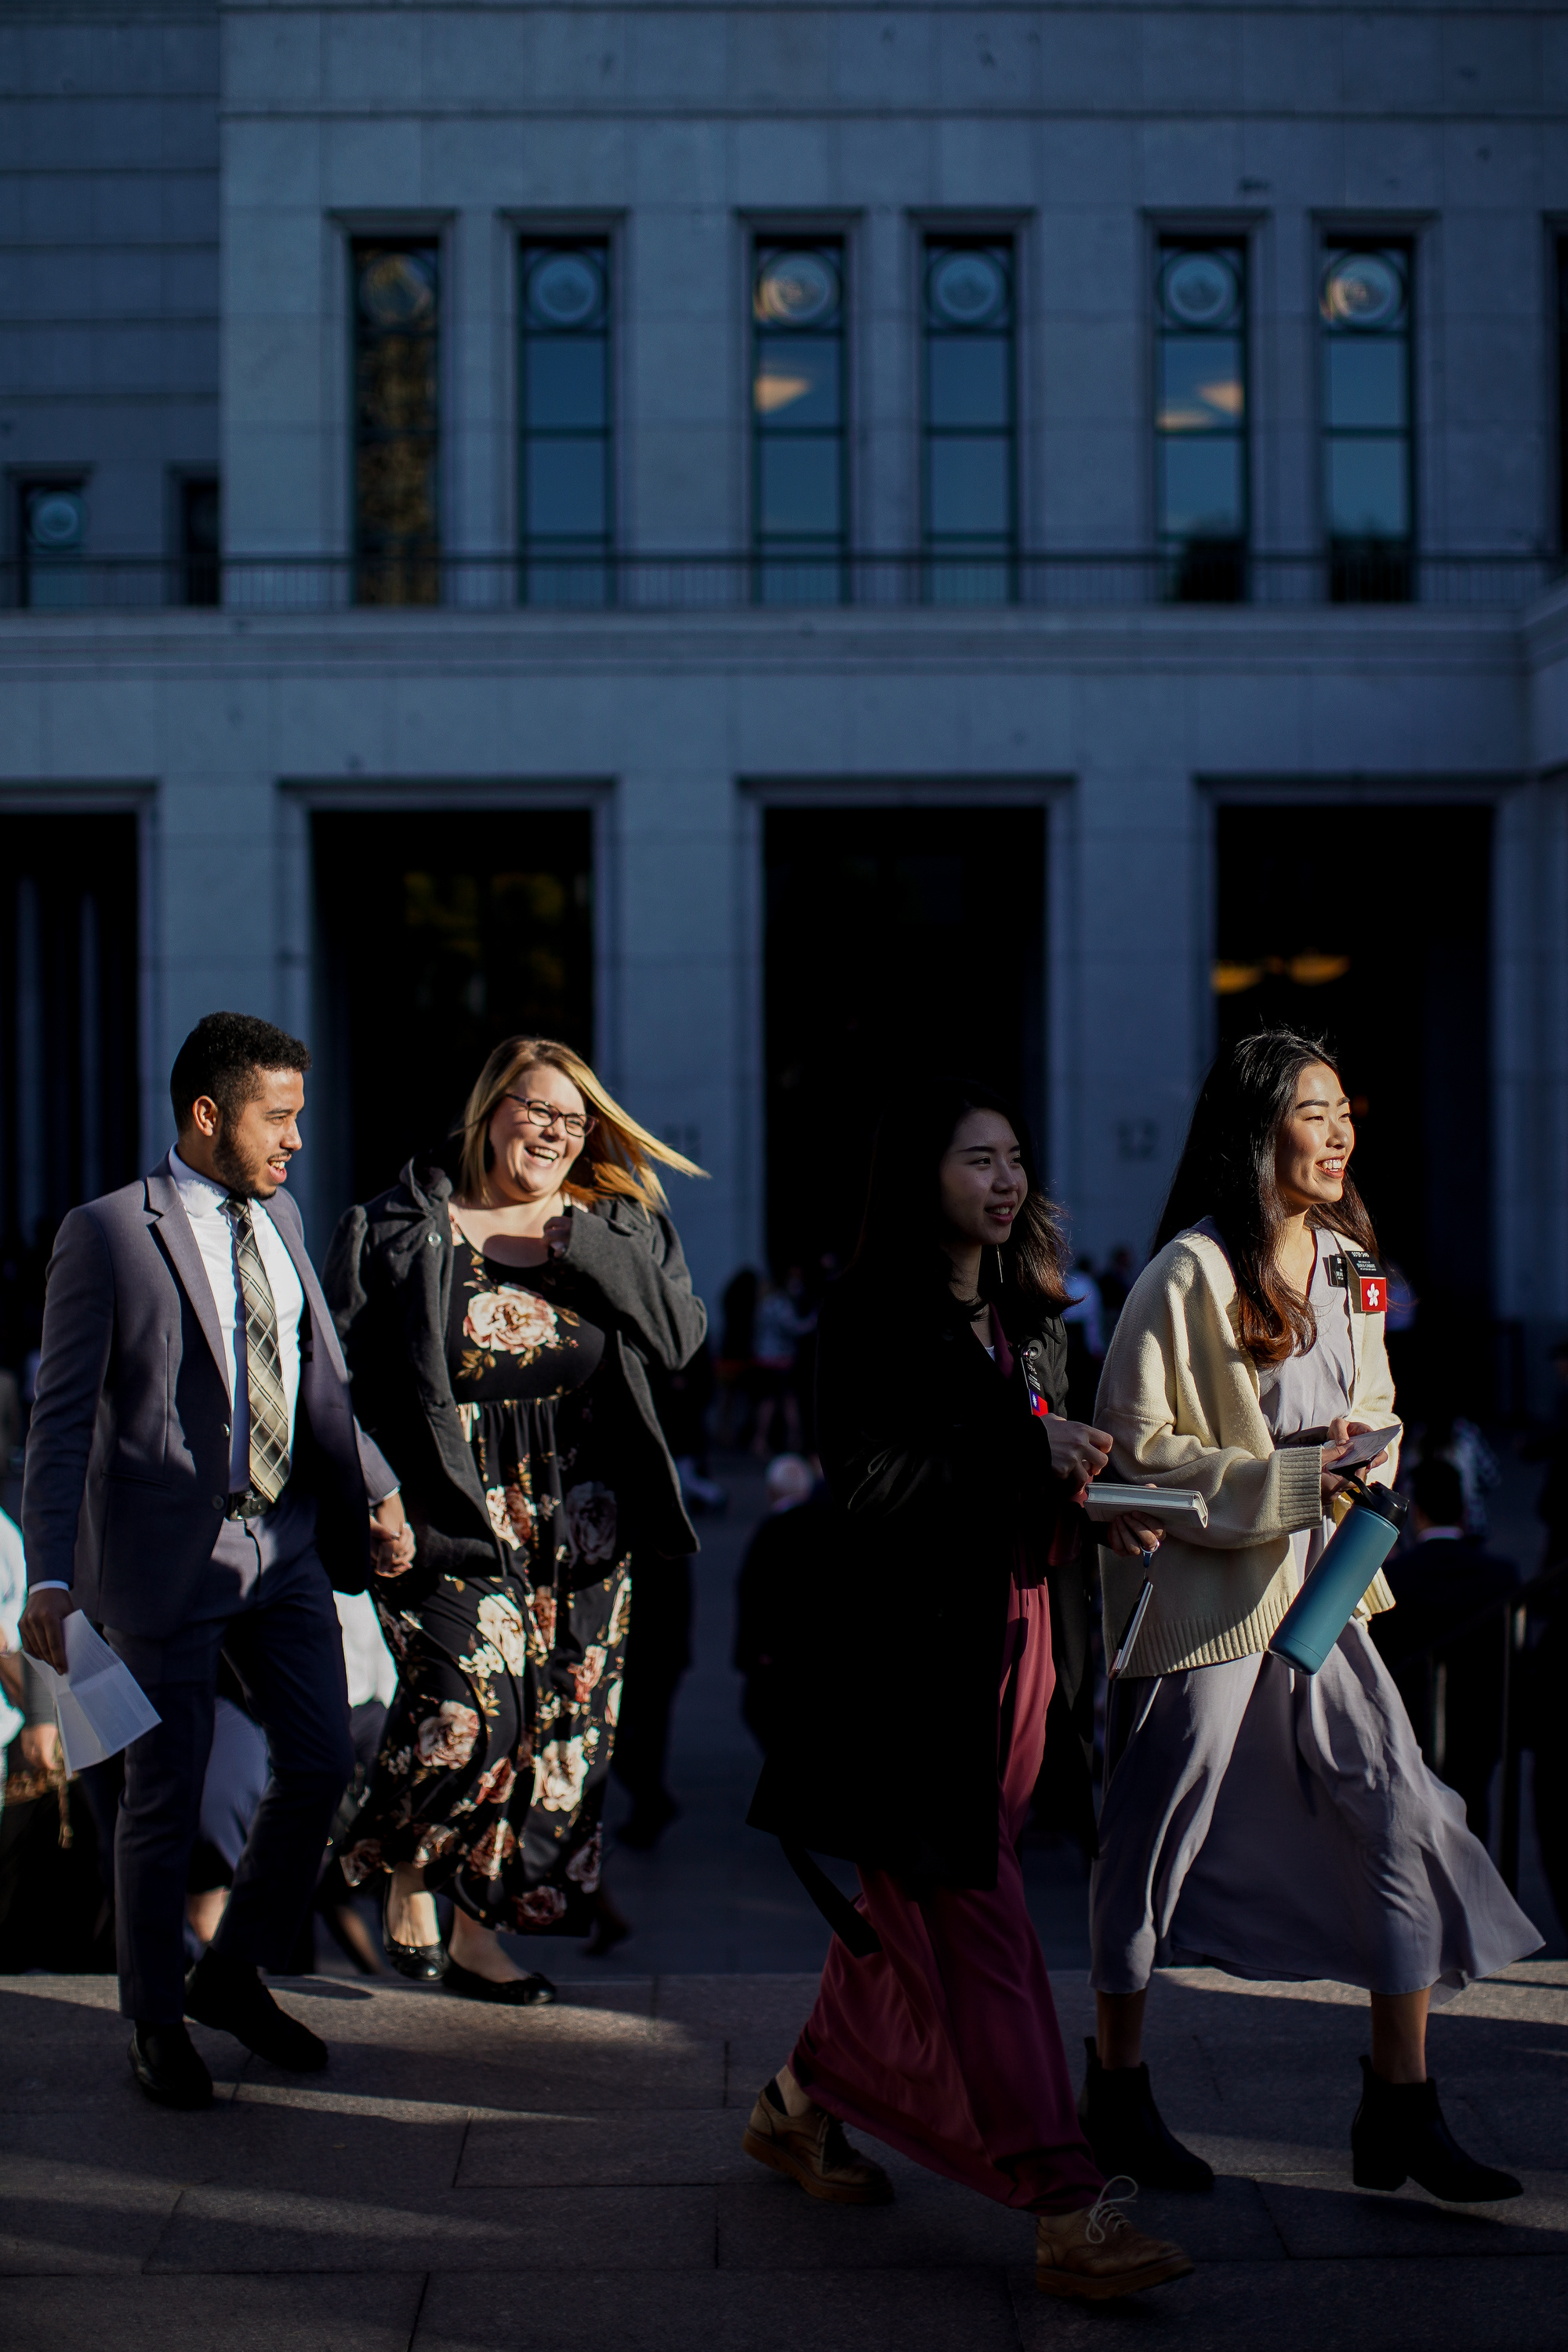 People arrive at the Conference Center in Salt Lake City before the 189th Semiannual General Conference of The Church of Jesus Christ of Latter-day Saints on Saturday, Oct. 5, 2019.